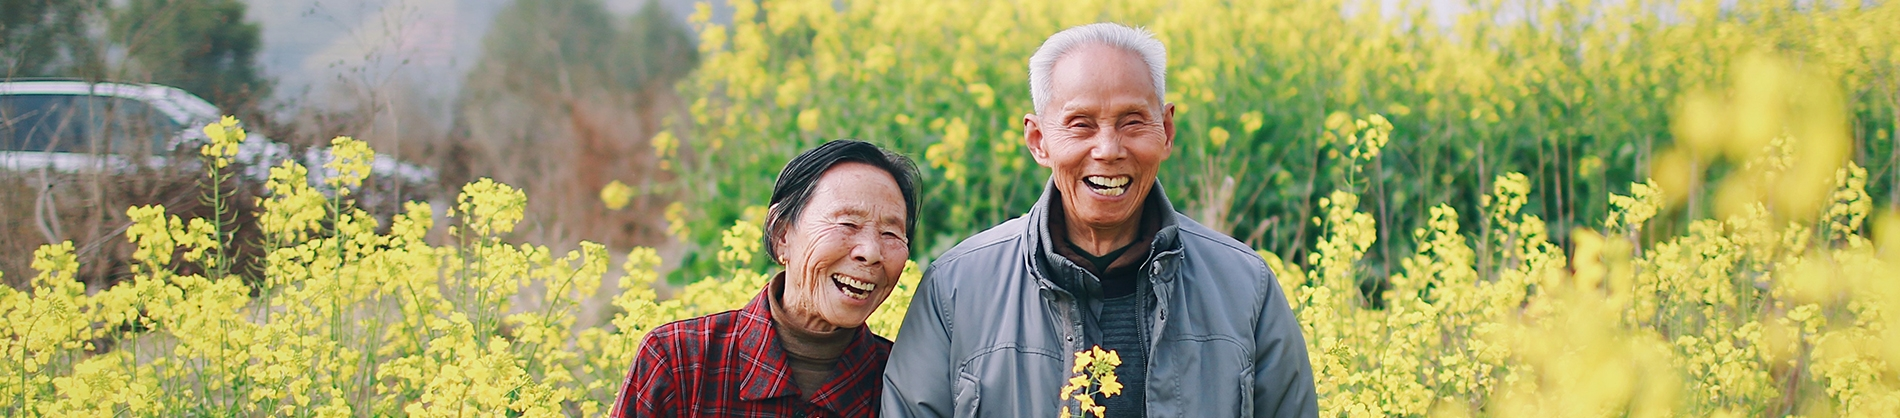 Two elderly friends walking through yellow flowers